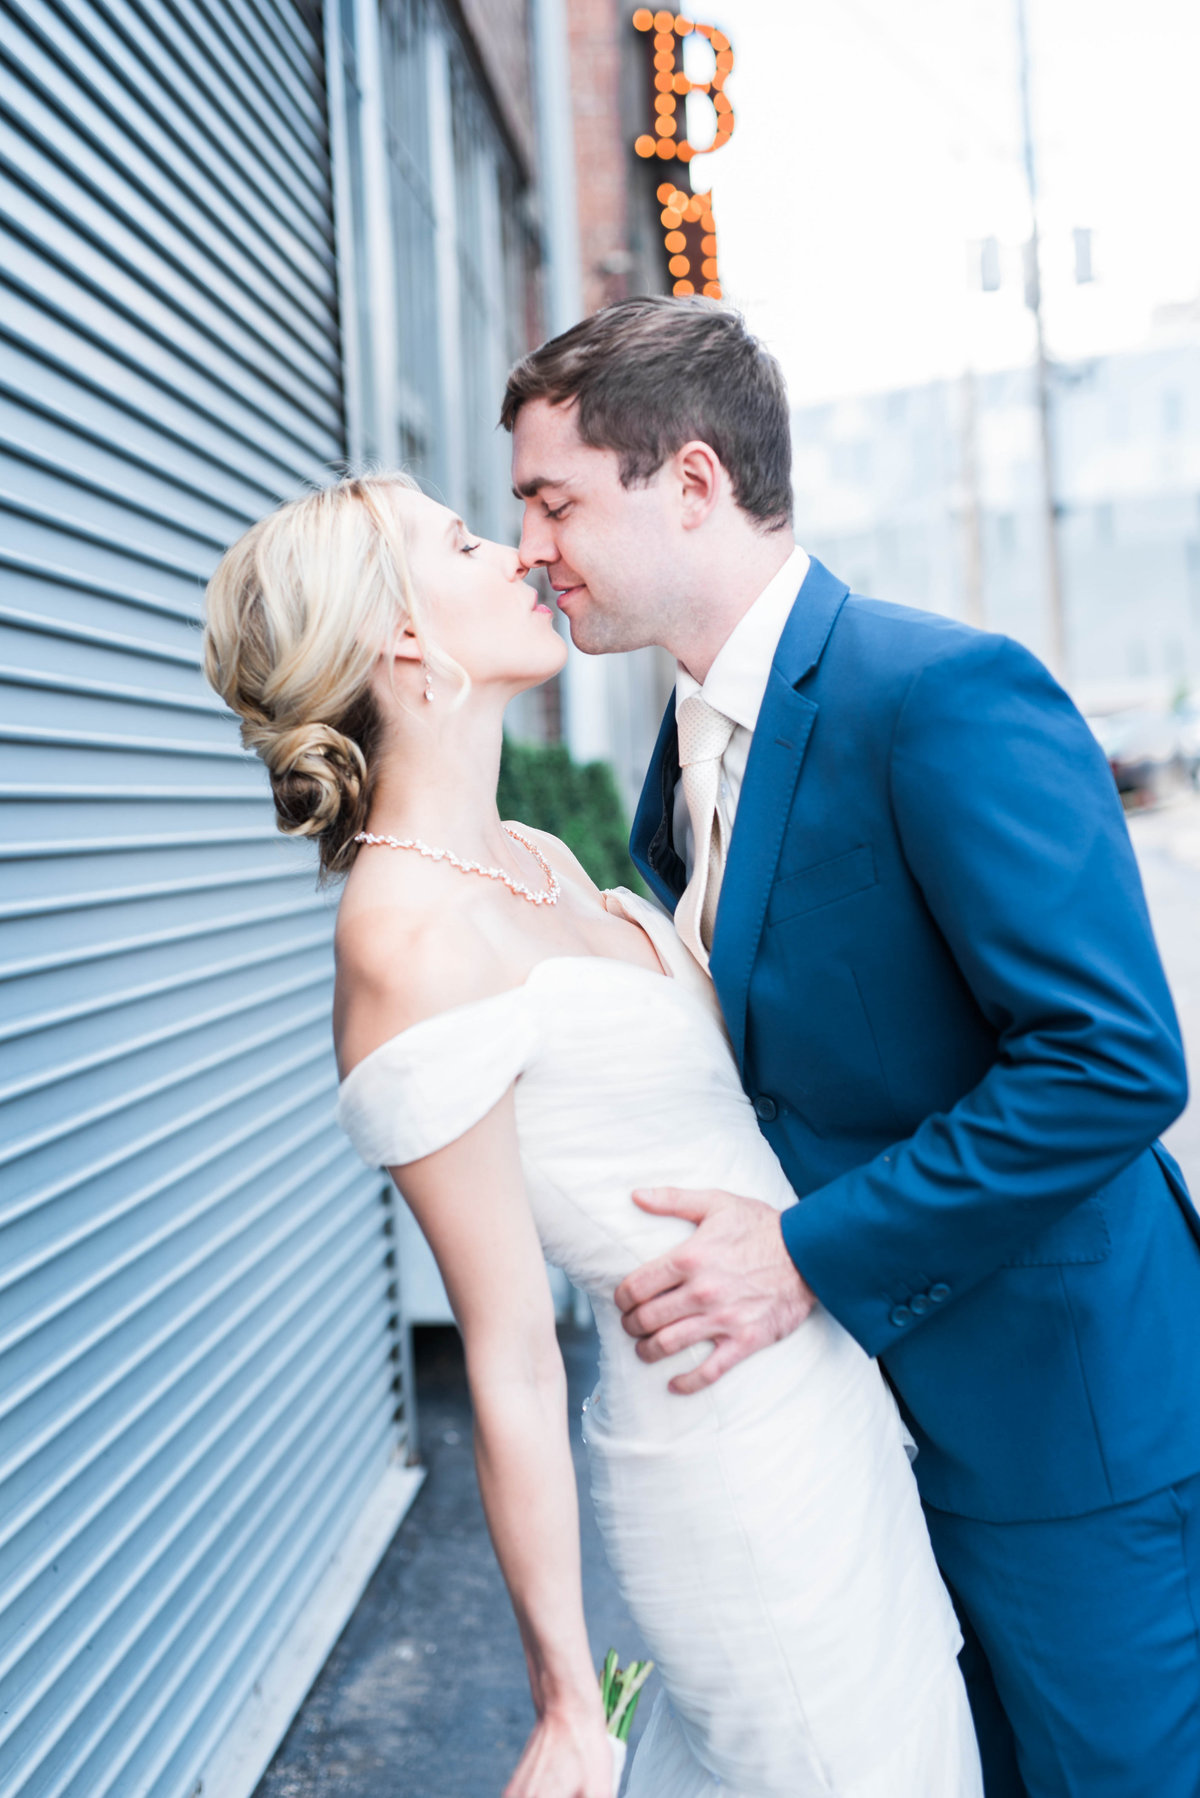 Bride and Groom in a formal downtown wedding